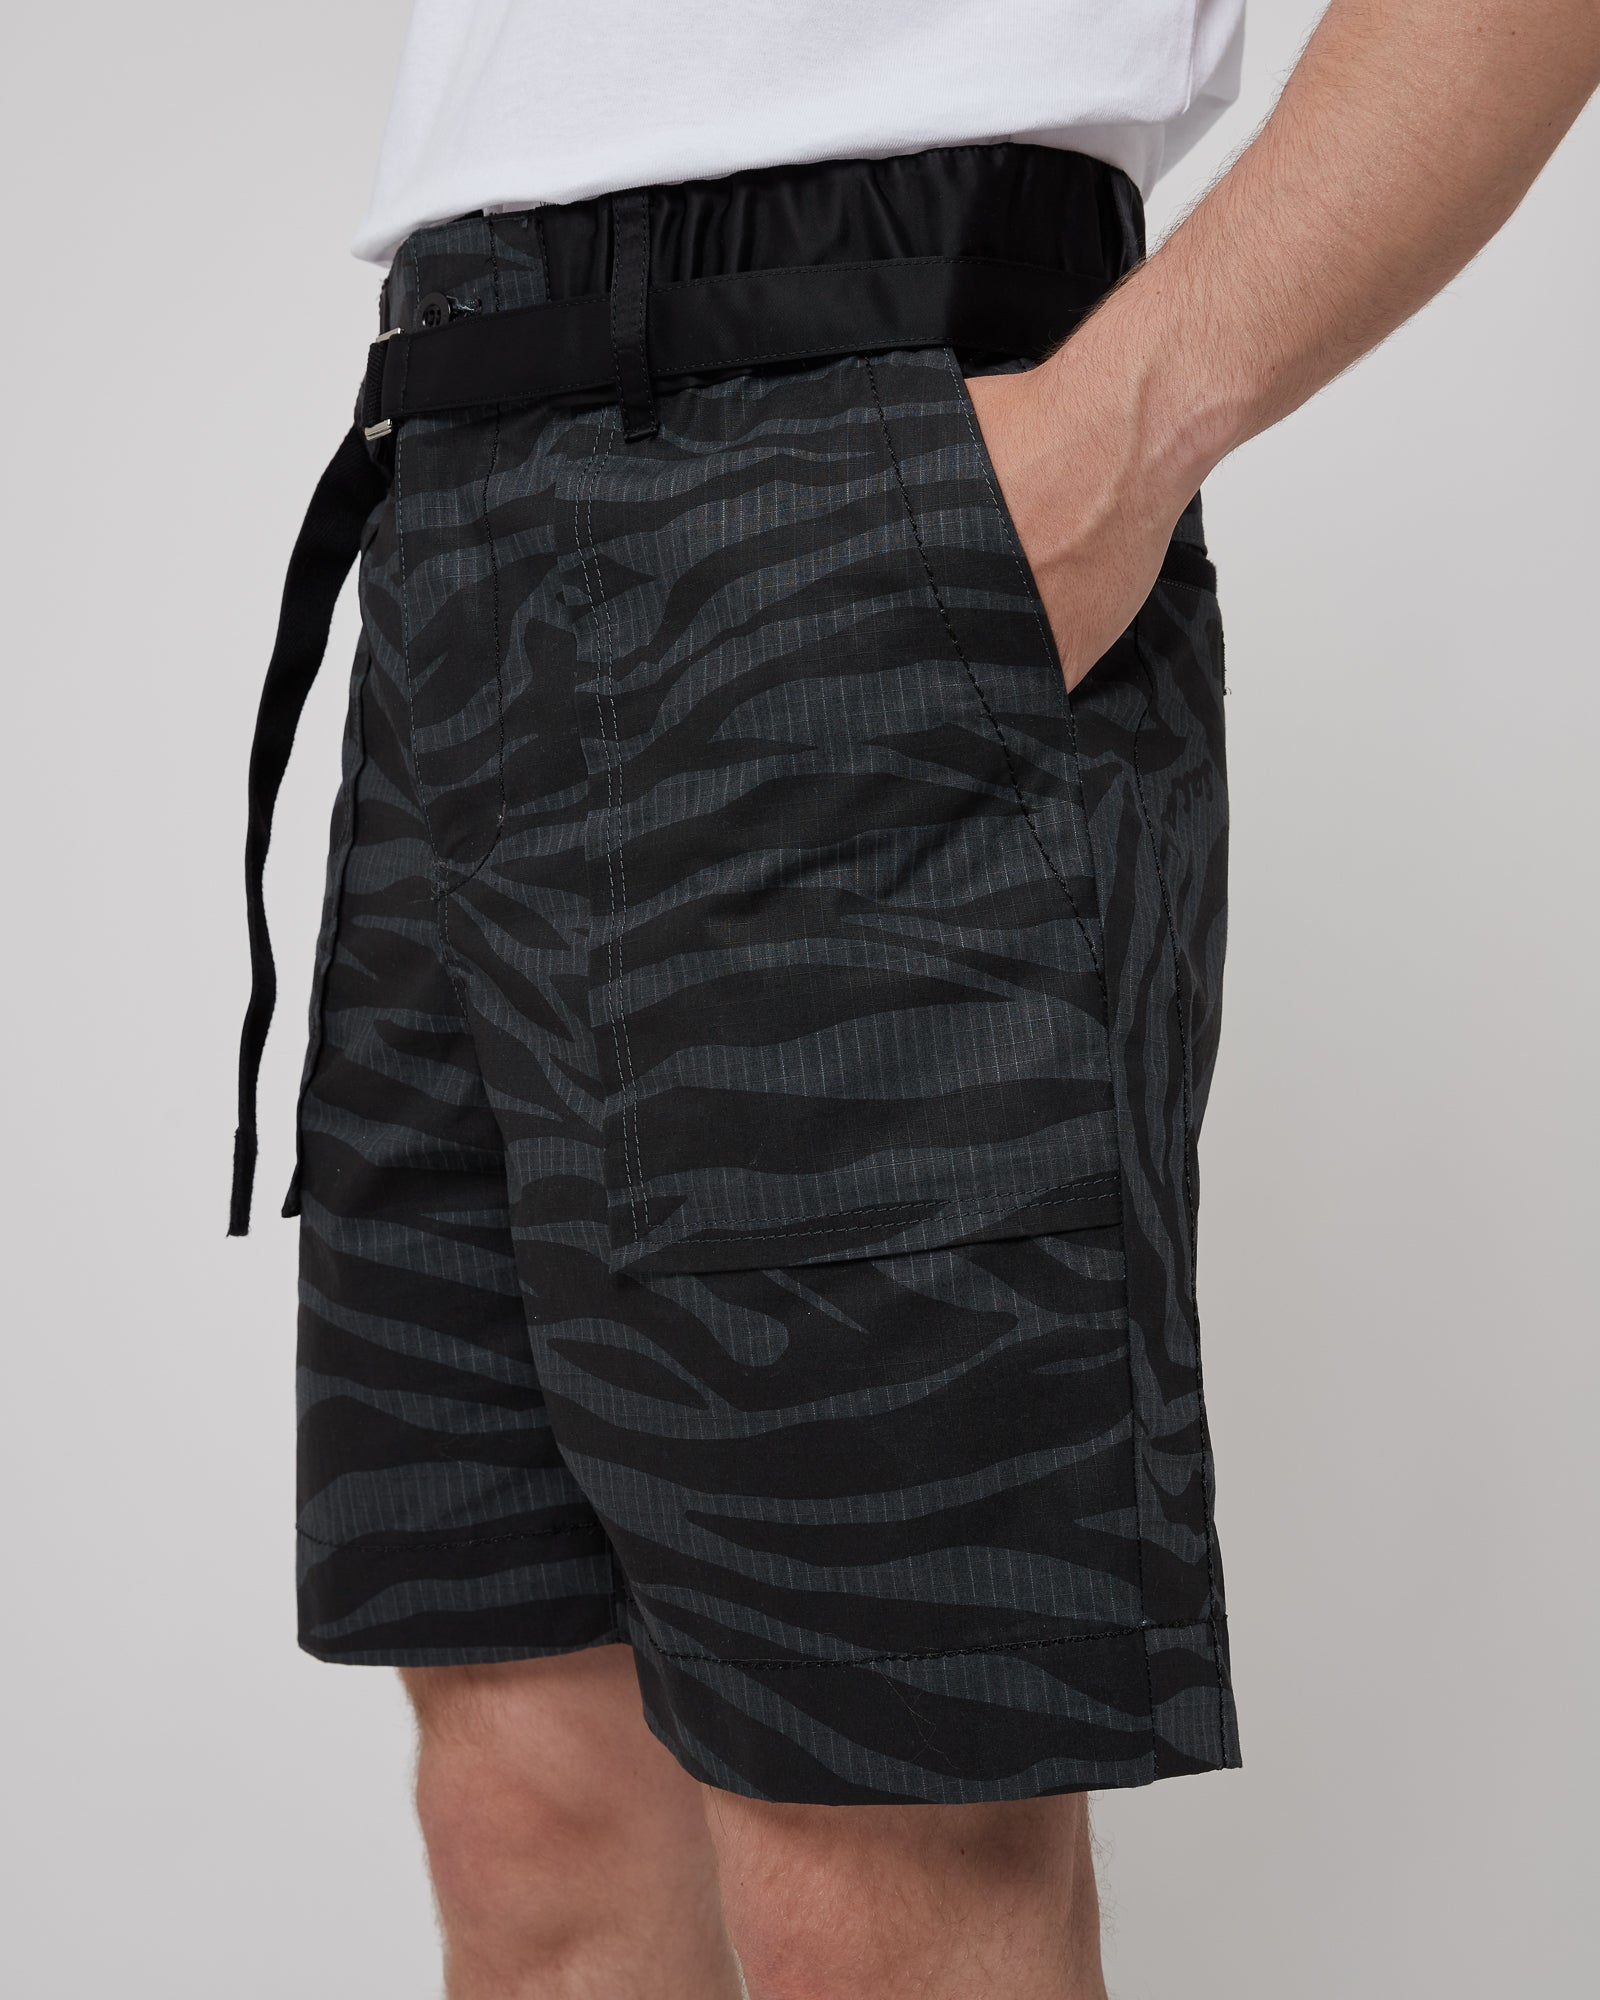 Zebra Print Shorts in Black & Gray